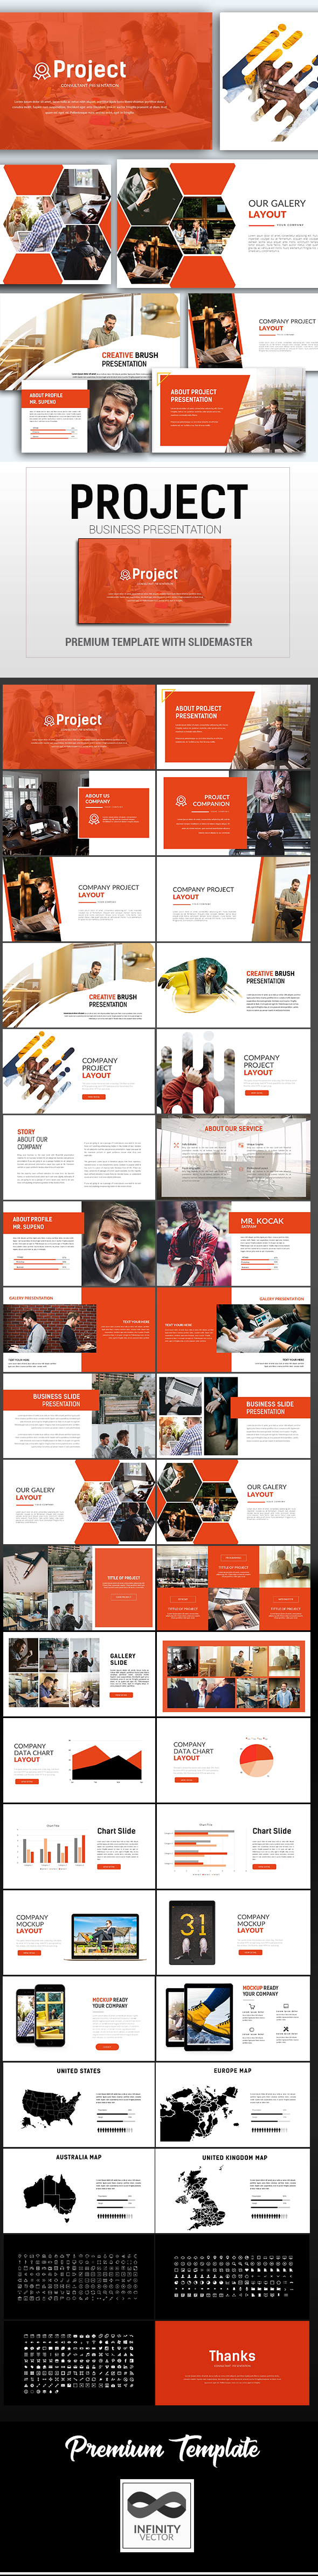 Project Consultant Presentation Keynote - Keynote Templates Presentation Templates